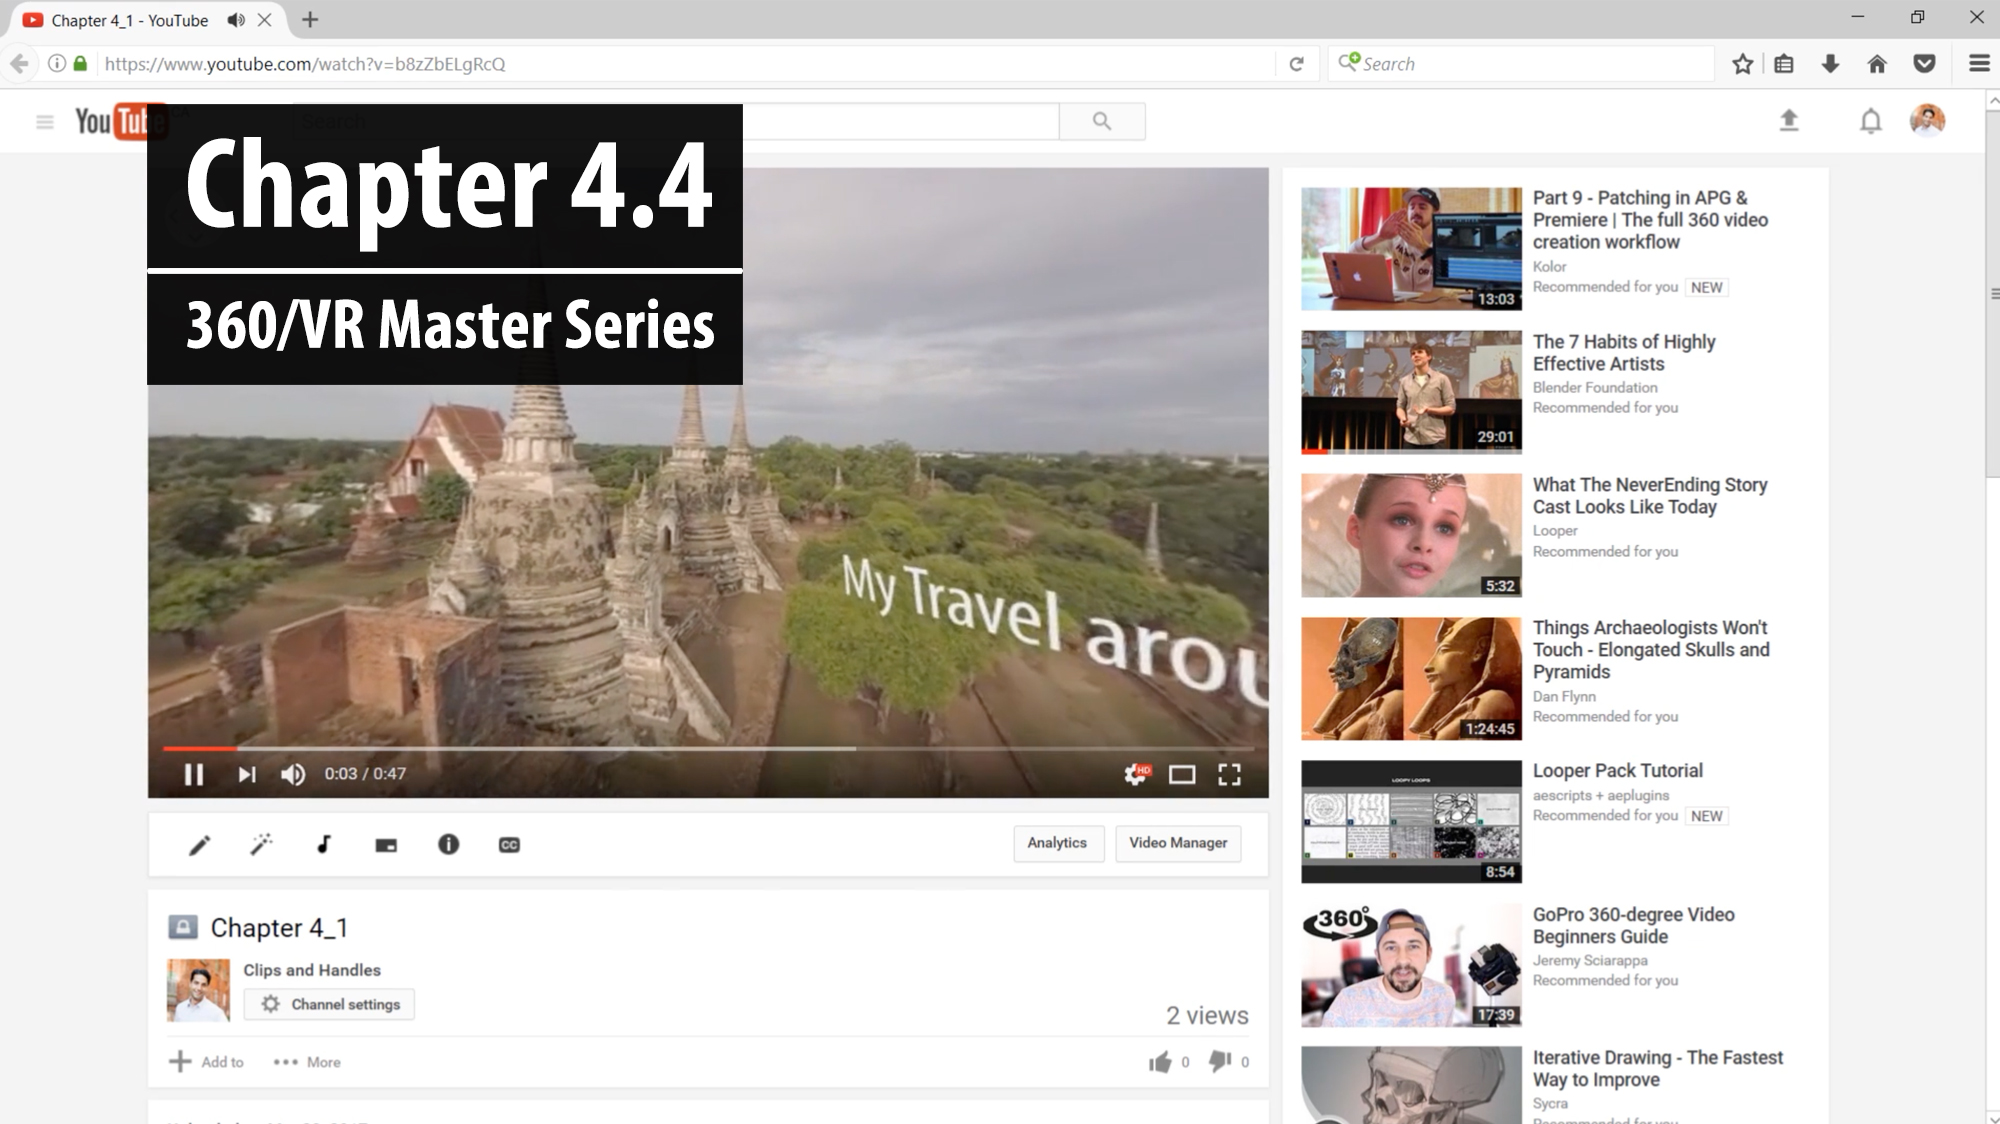 Chapter-4-4-360-VR-Master-Series